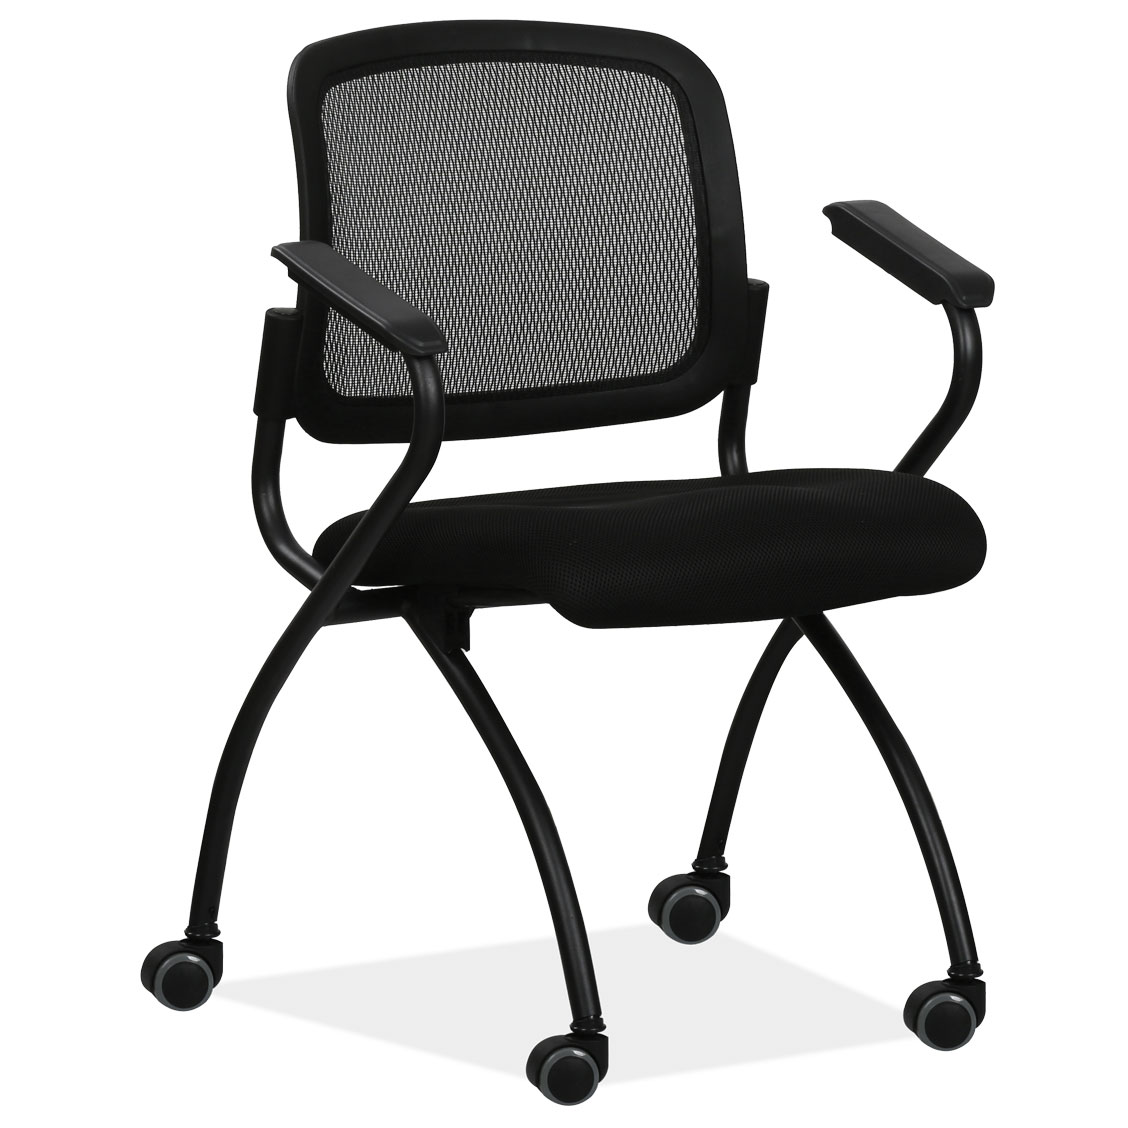 OfficeSource Encline Collection Nesting, Mesh Chair with Flip-Up Seat